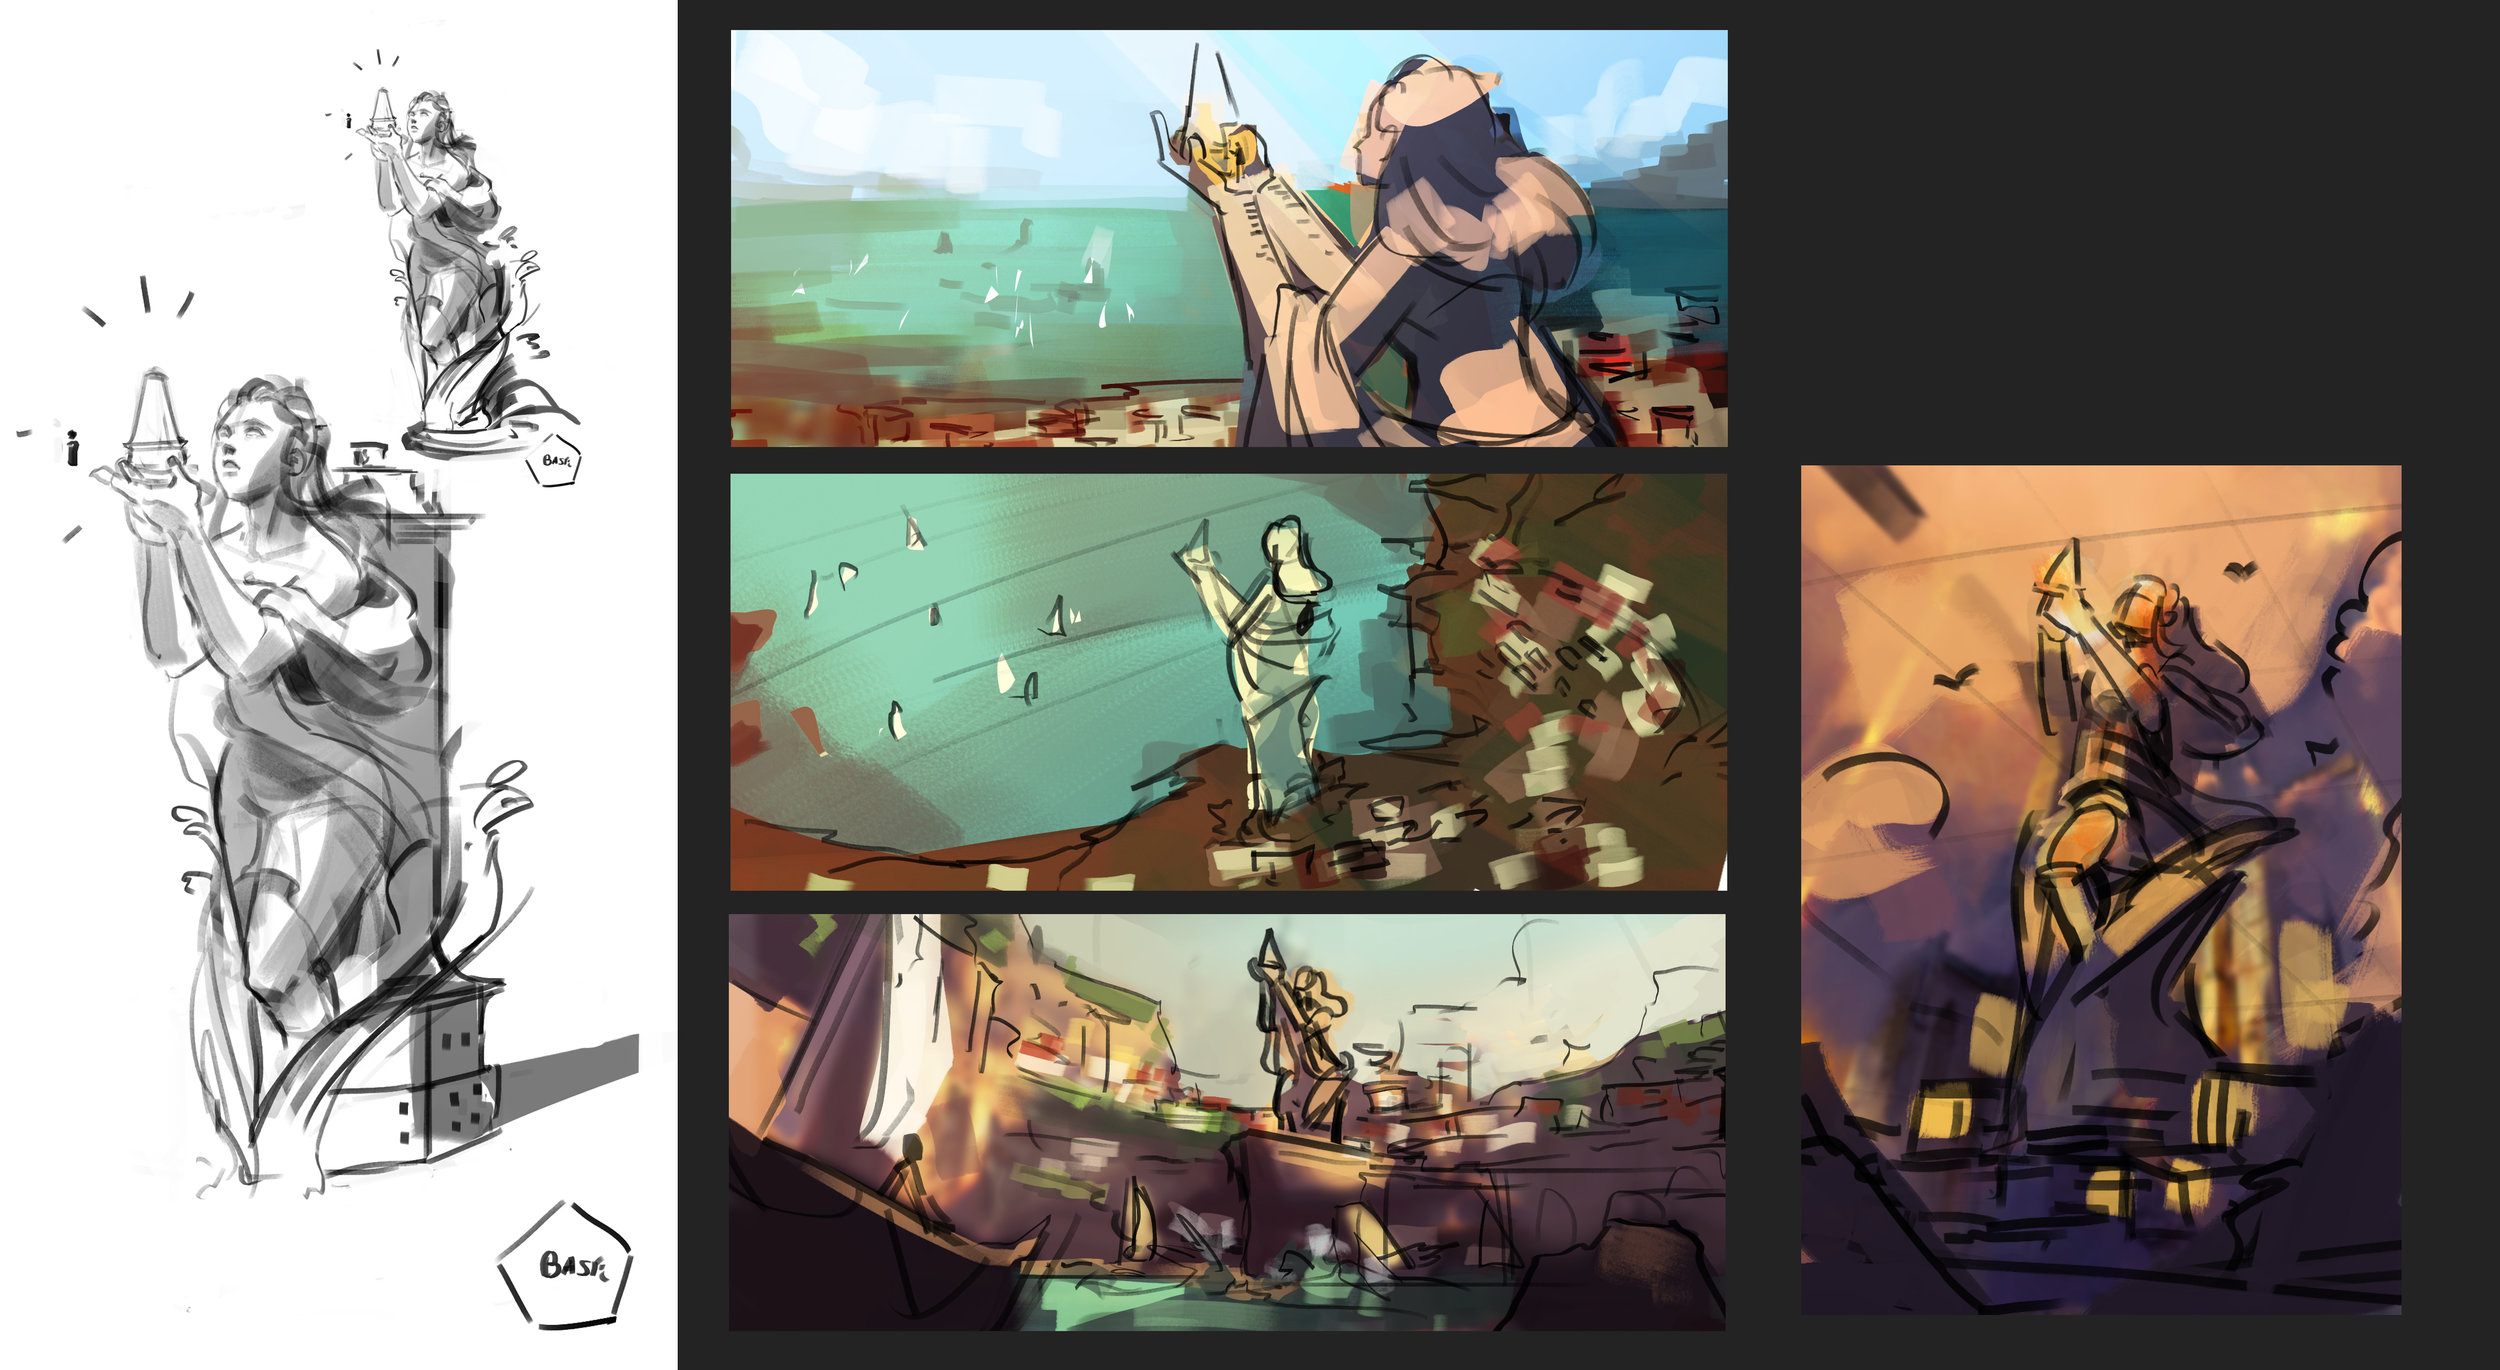 Quick sketches for composition and colour